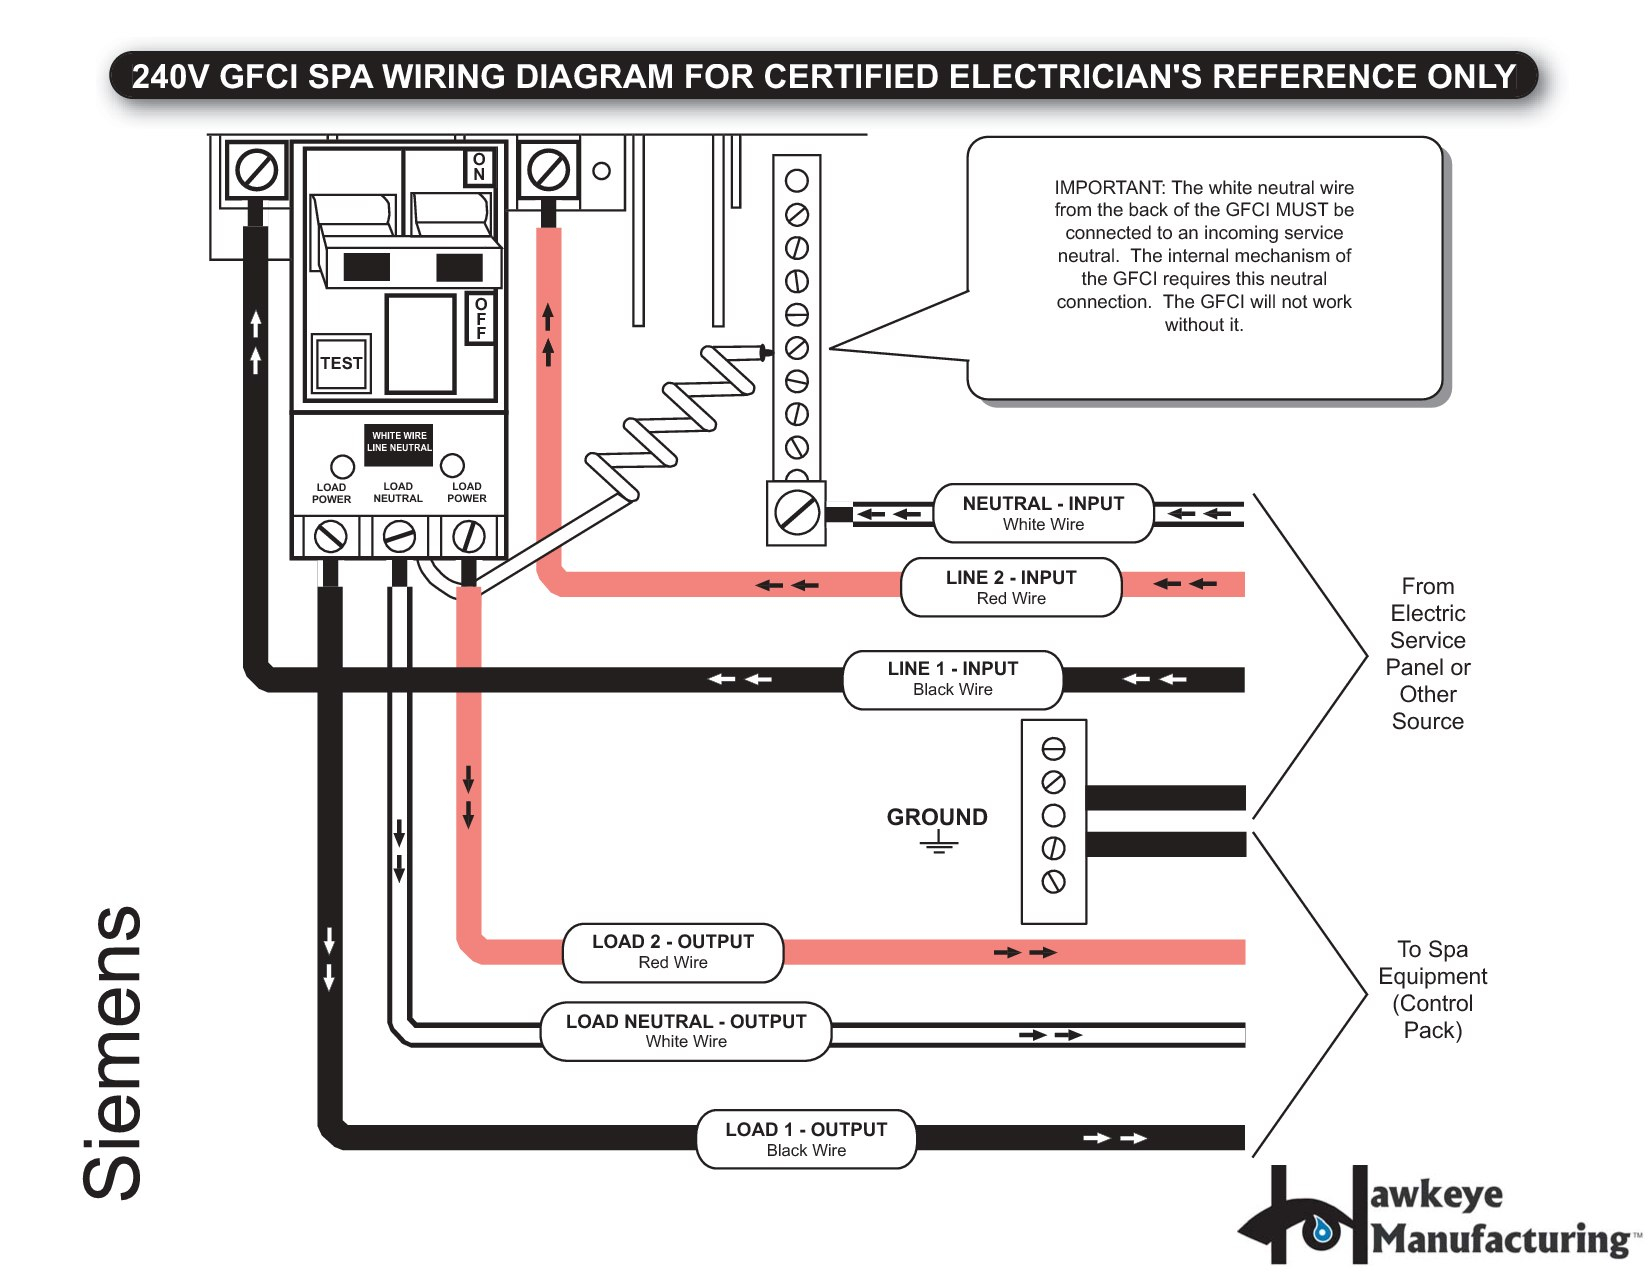 eaton mcc bucket wiring diagram gallery. Black Bedroom Furniture Sets. Home Design Ideas